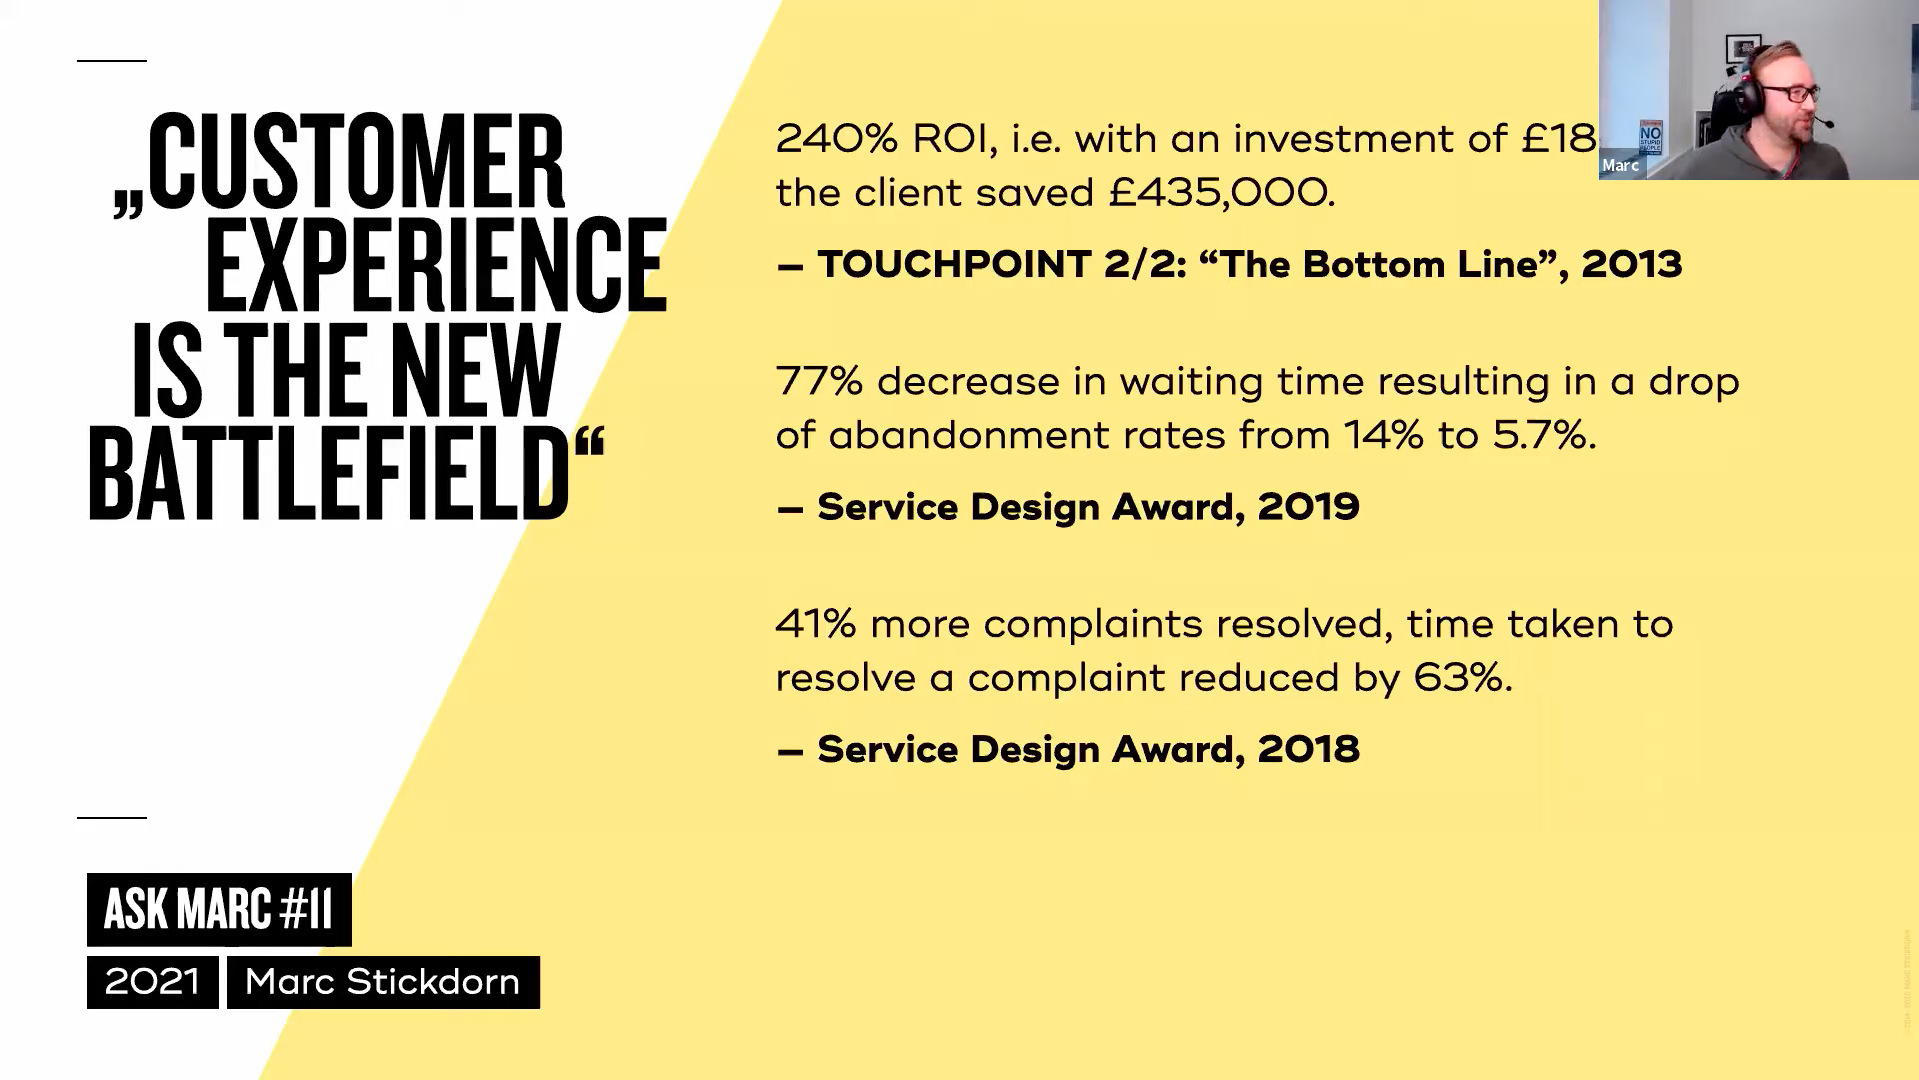 examples how service design can impact ROI